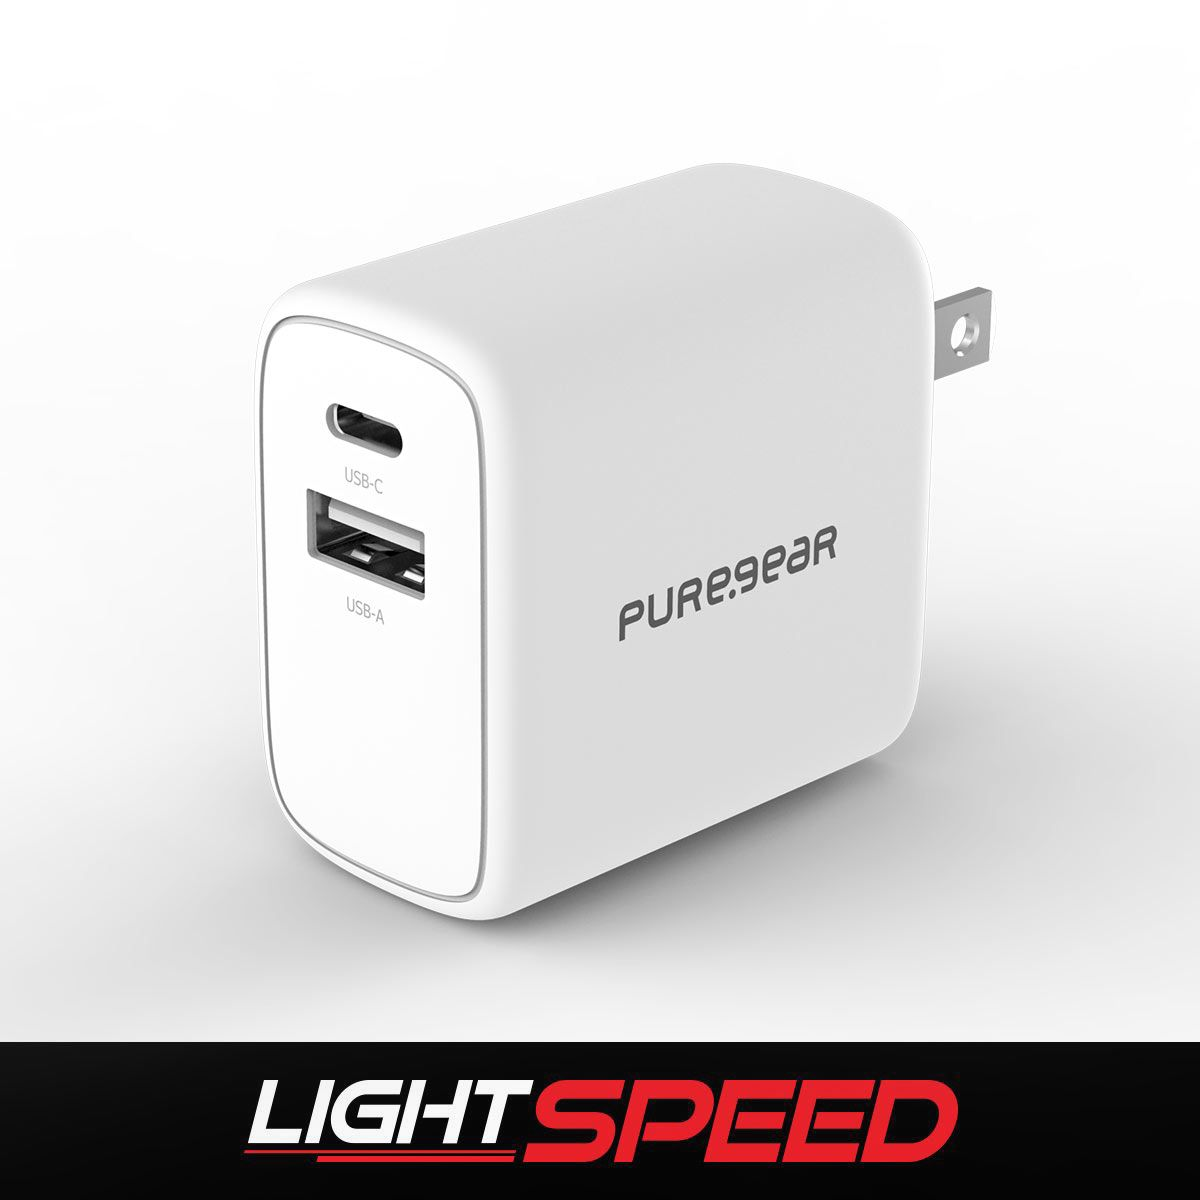 LightSpeed - 30W Dual Port USB-A + USB-C PD Wall Charger - White